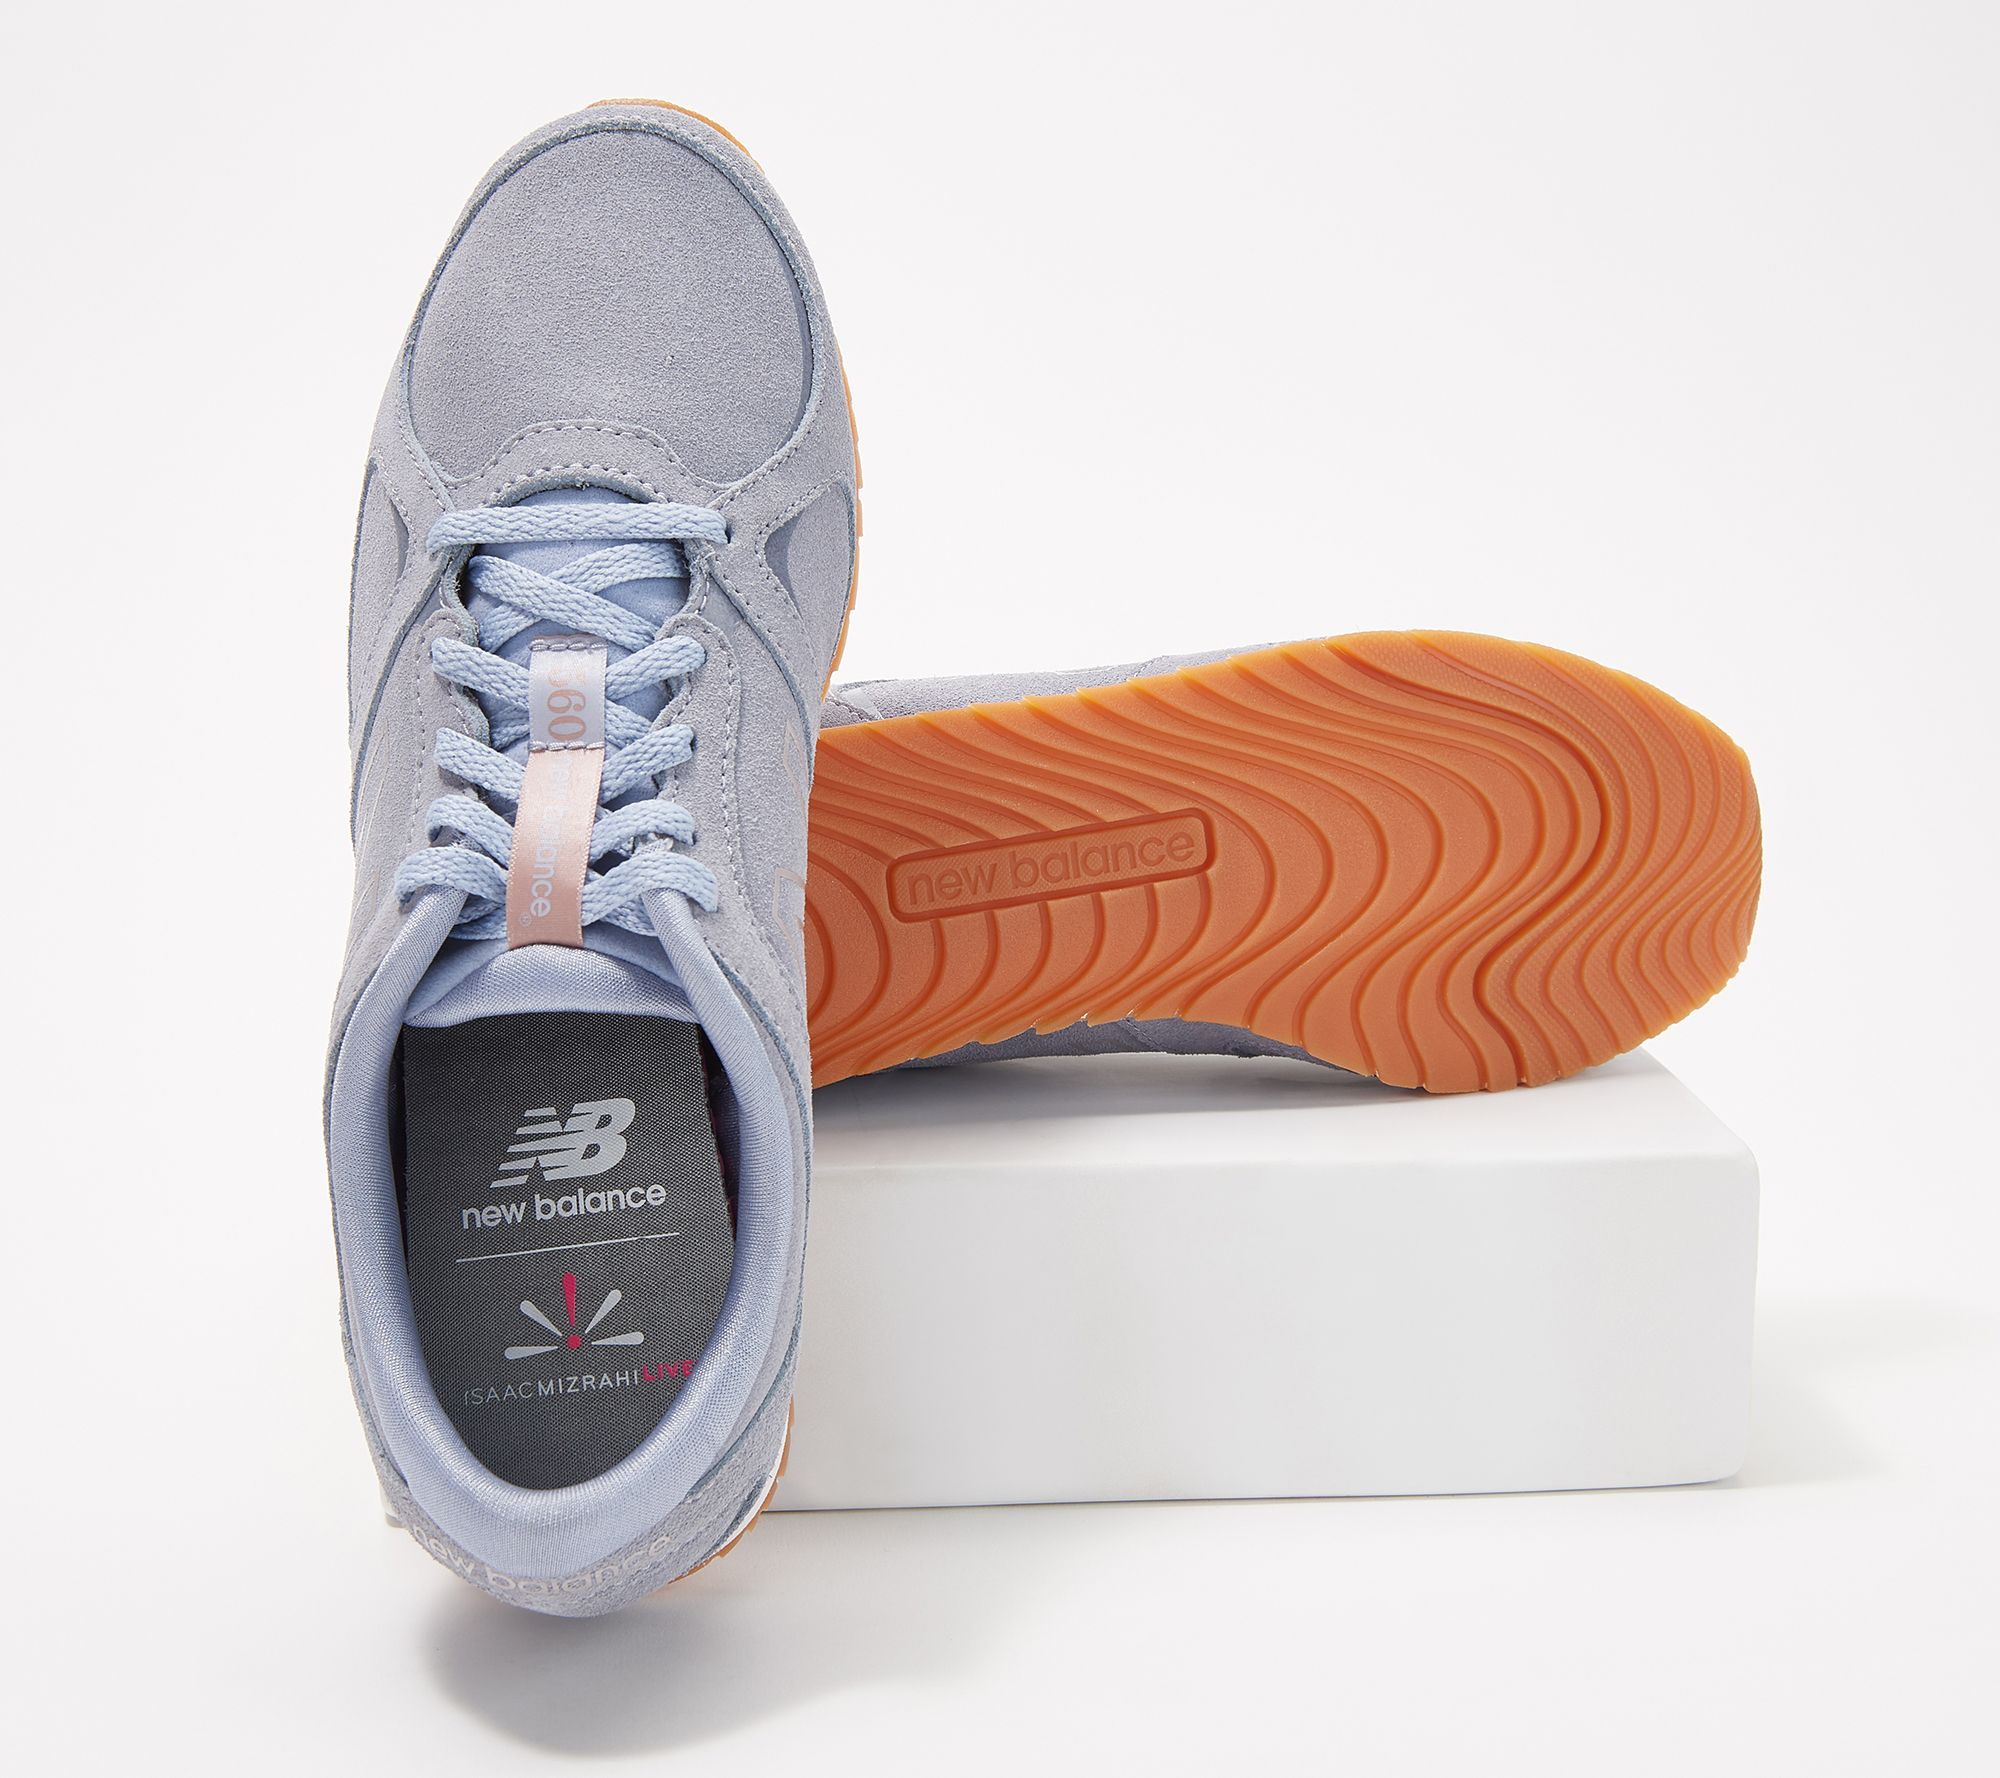 New Balance x Isaac Mizrahi Live! Suede Lace-Up Sneakers - 560 — QVC com